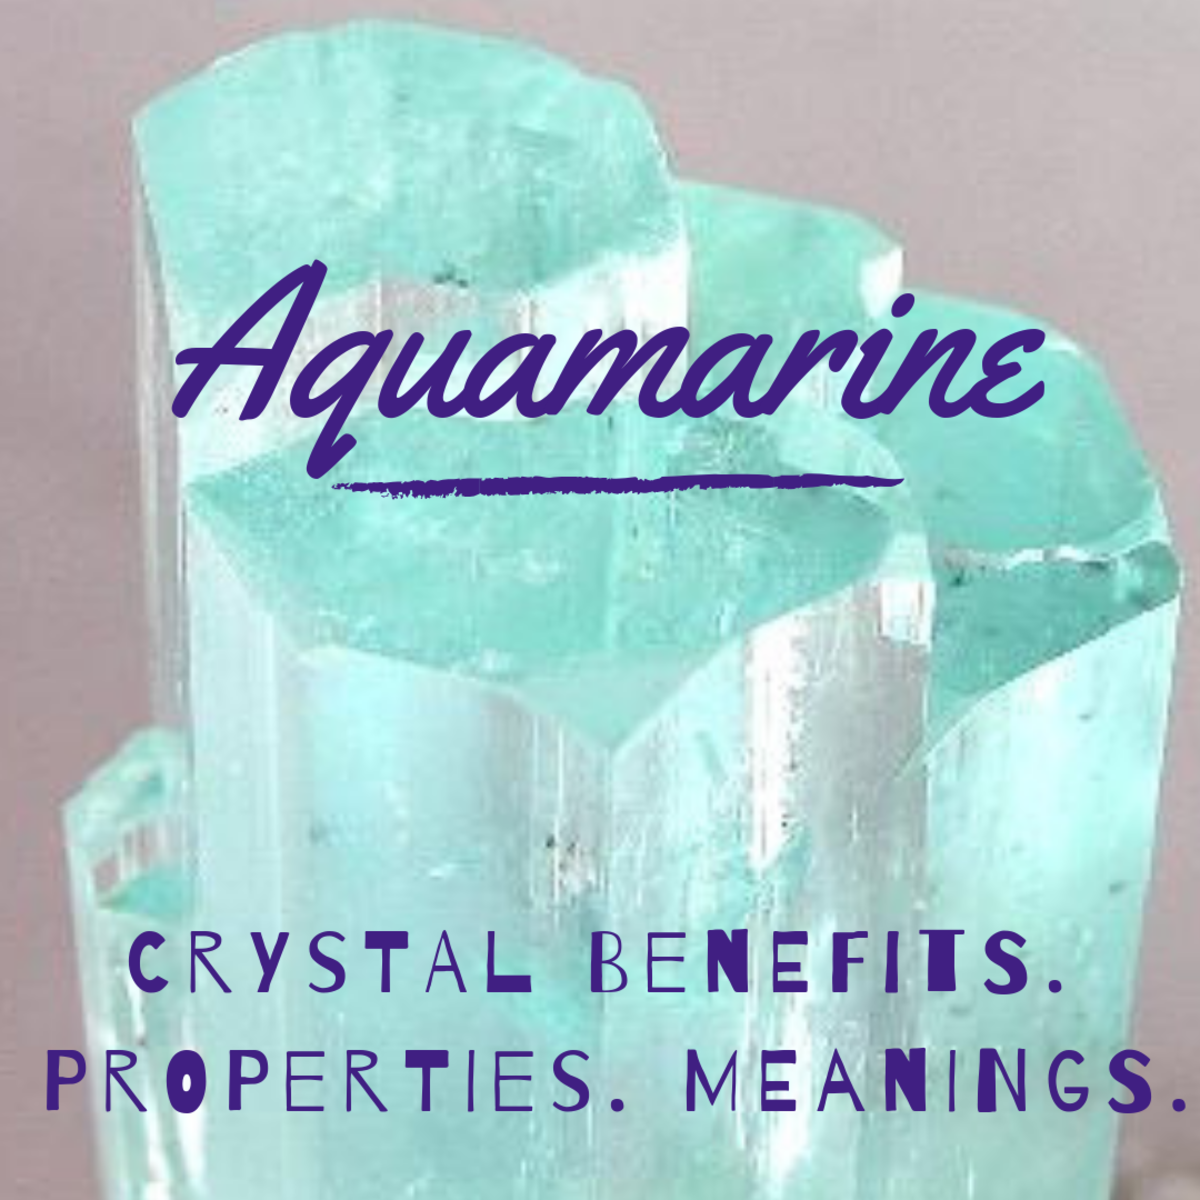 Aquamarine crystal properties.